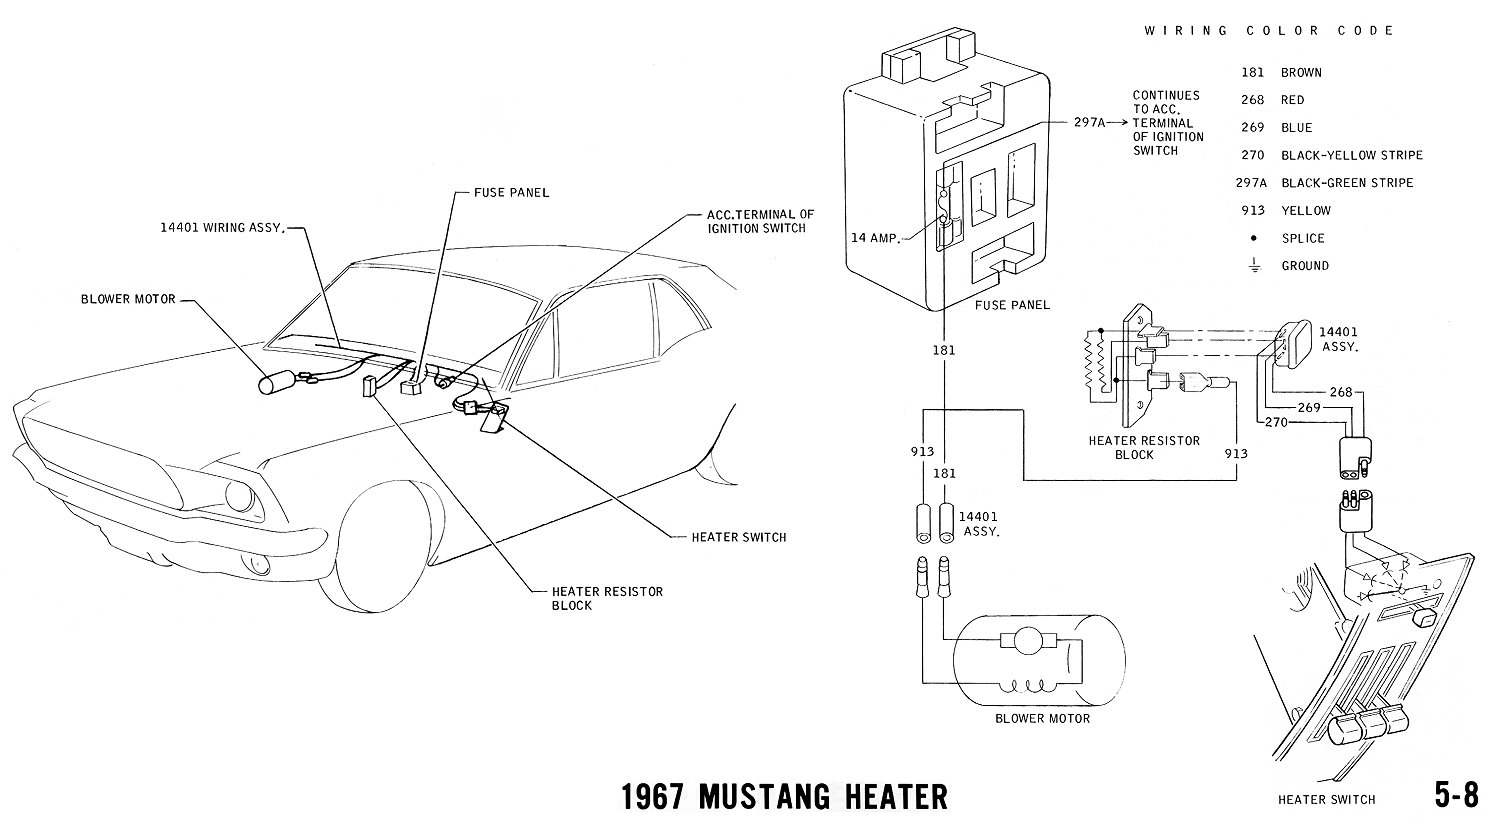 67heater 1968 mustang wiring diagrams and vacuum schematics average joe 1965 ford mustang wiring diagram at crackthecode.co